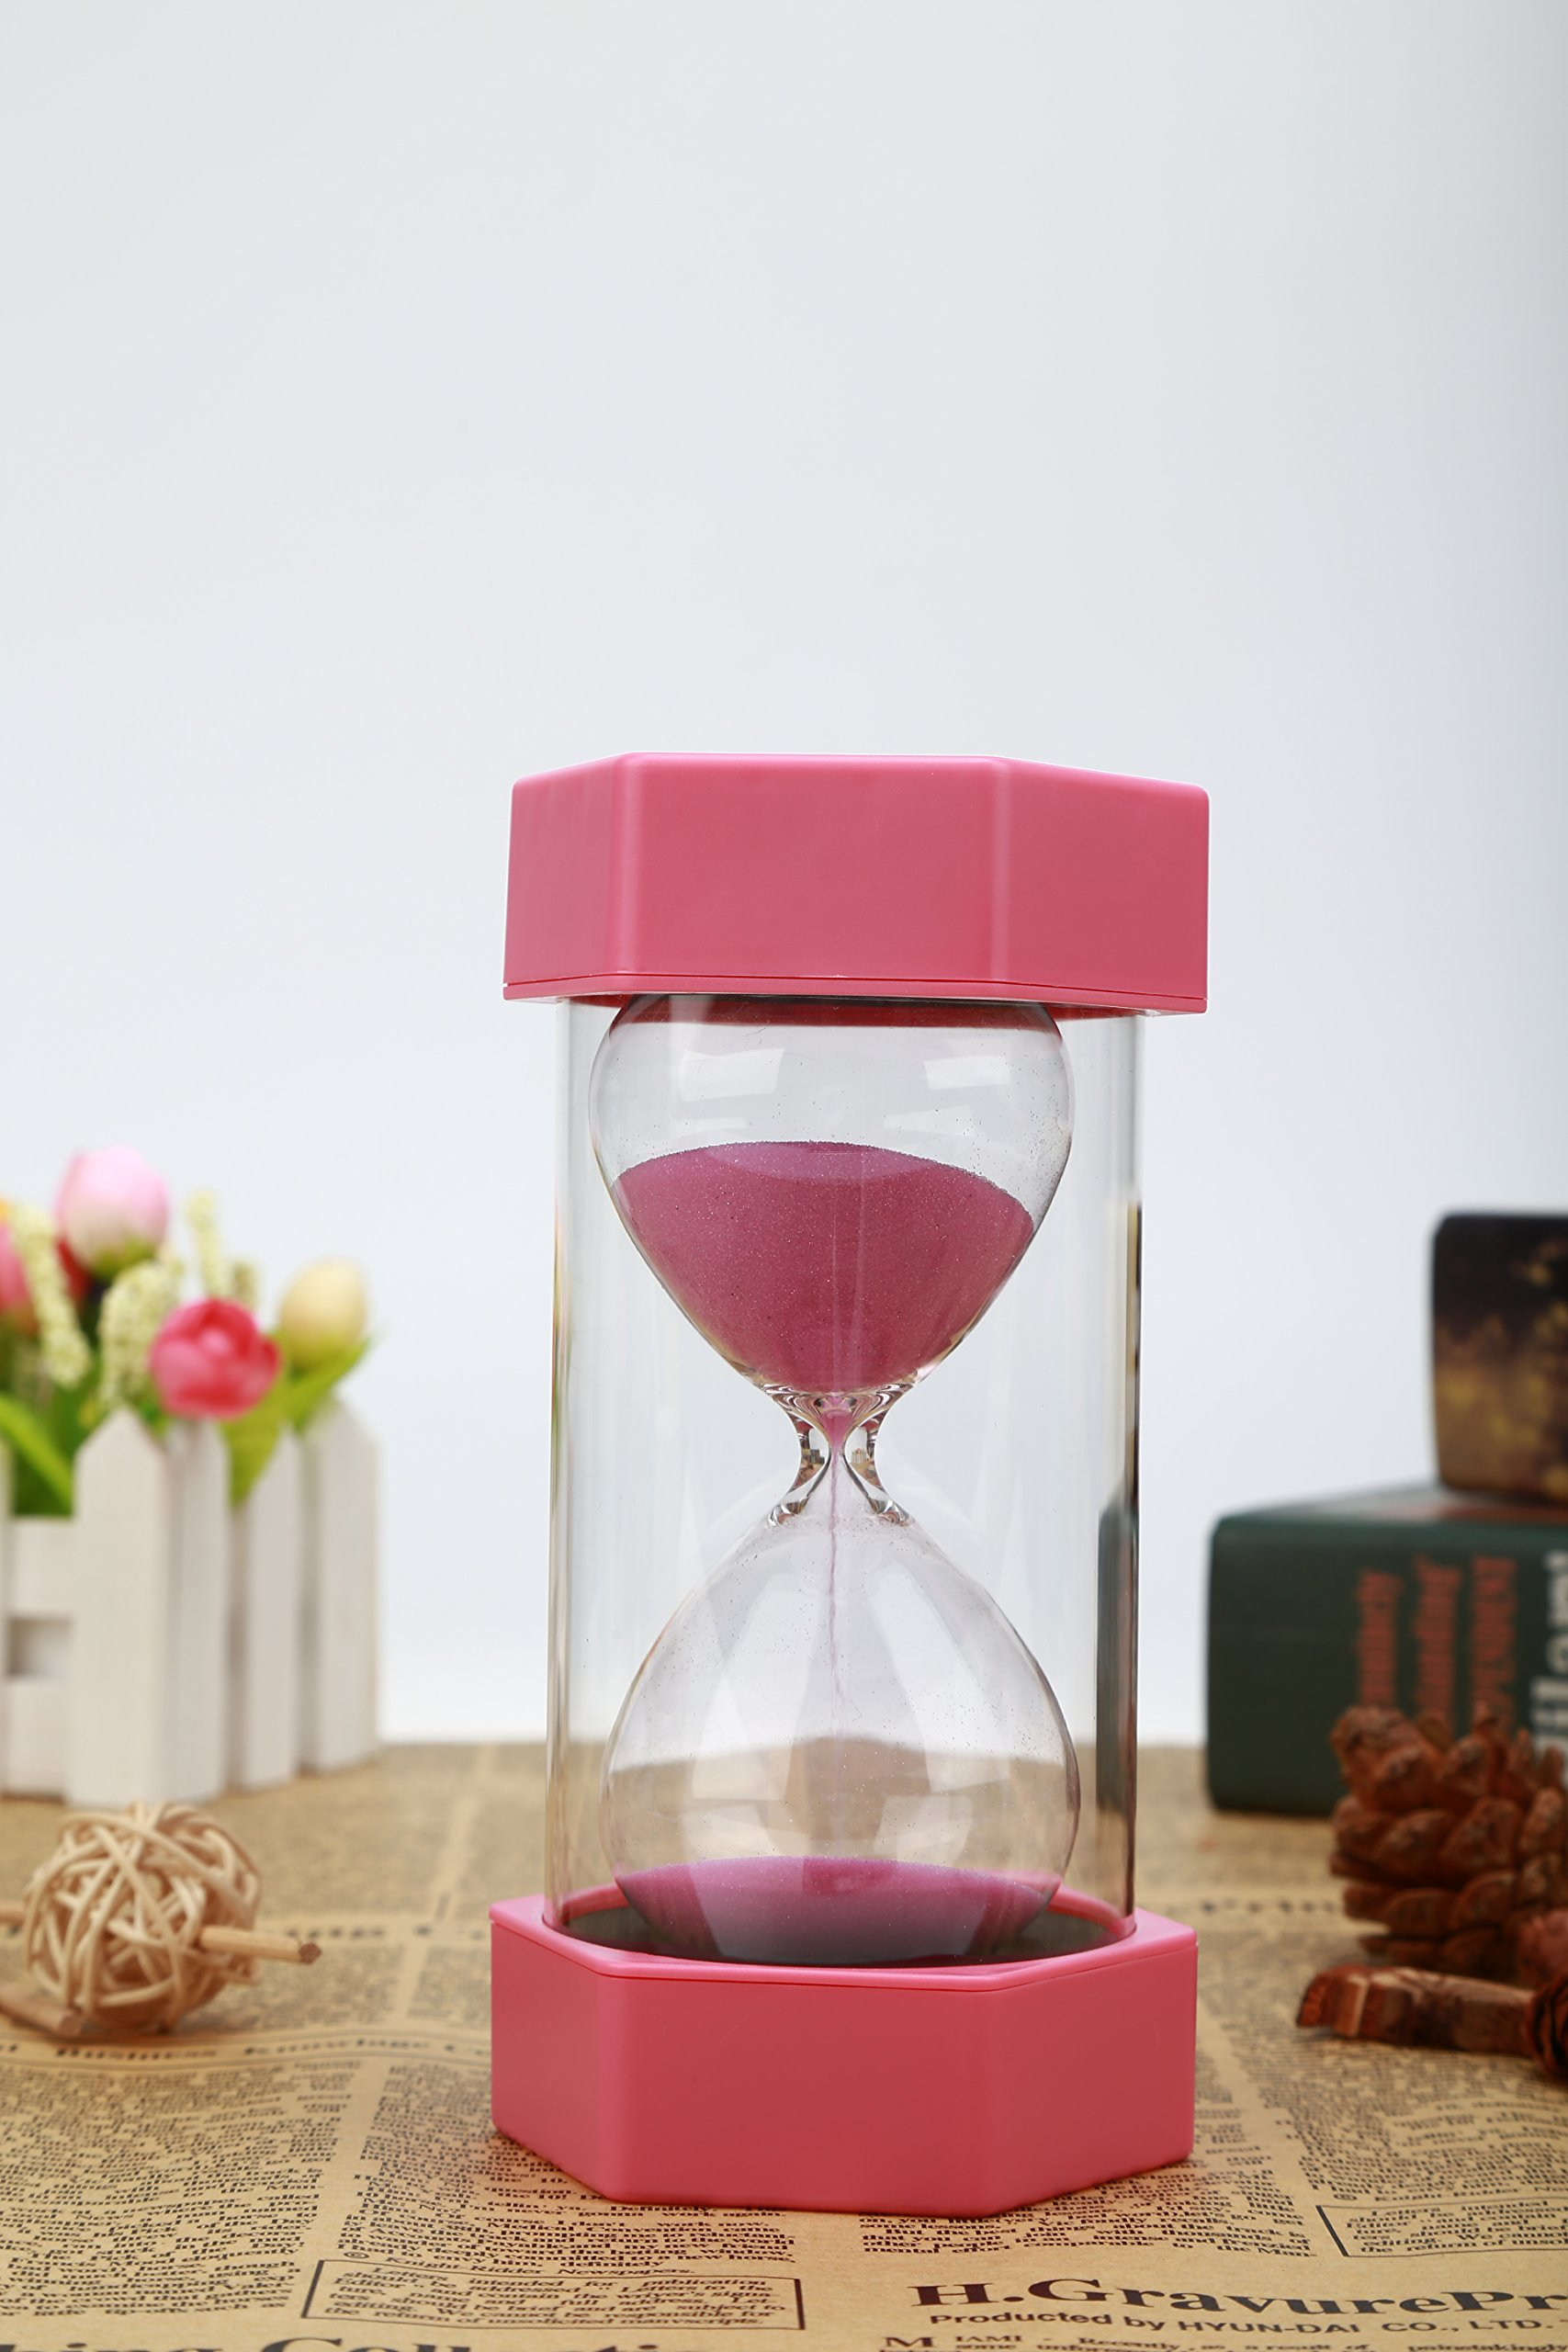 VEOLEY 10 Minute Sand Timer Security Fashion Hourglass for Kids, Classroom, Game,Kitchen,lunch-Pink by VEOLEY (Image #2)